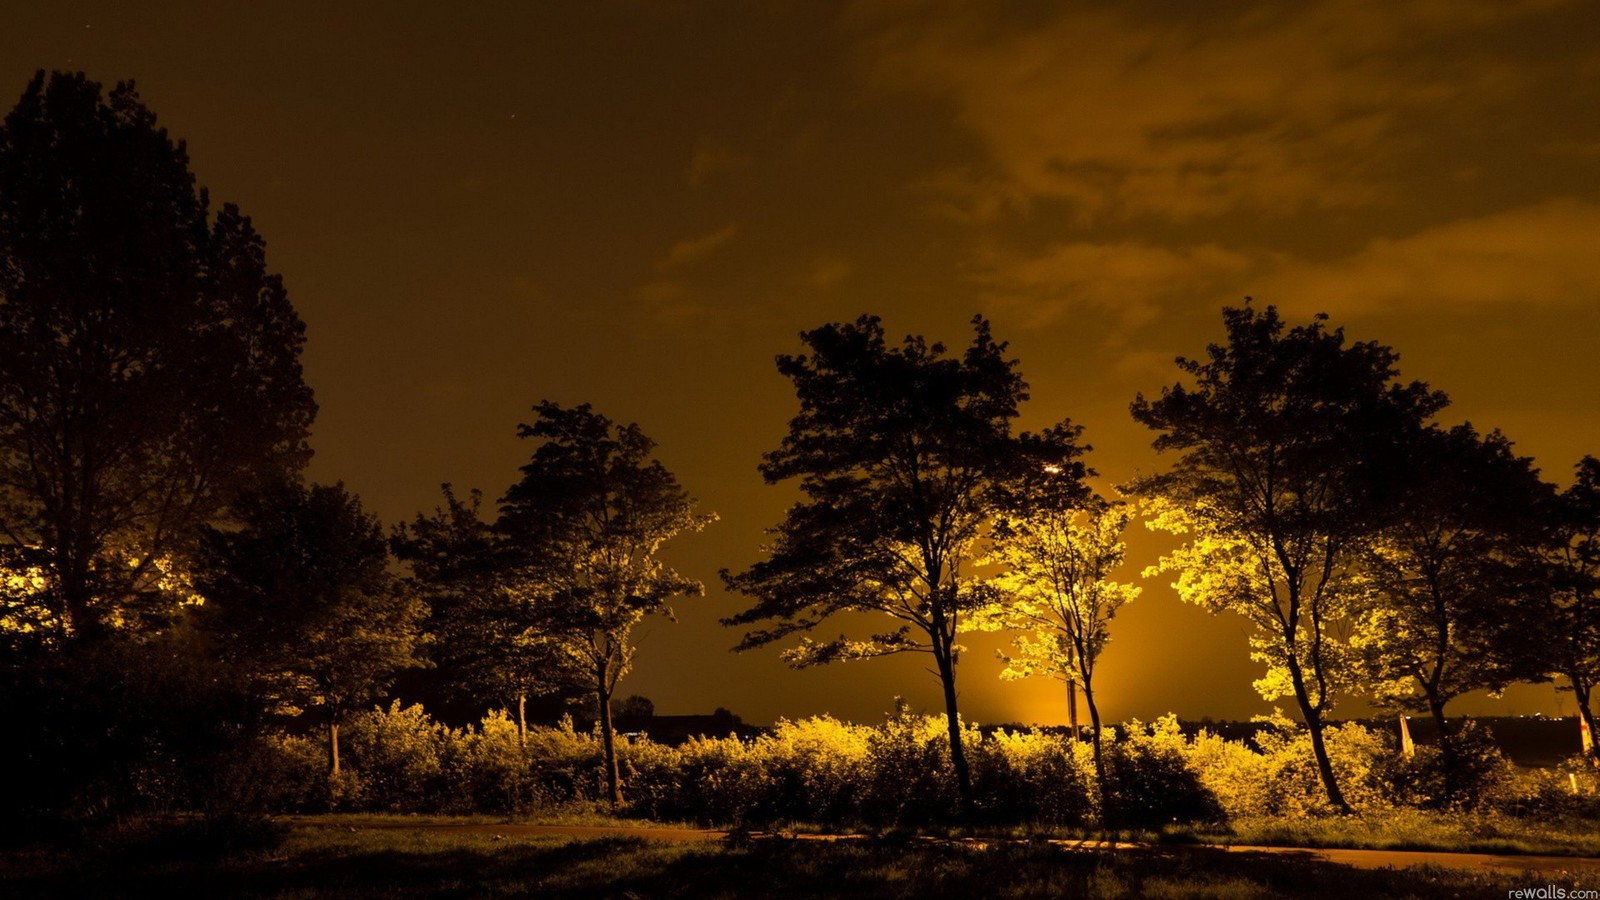 Light Nature Night Trees Wallpaper